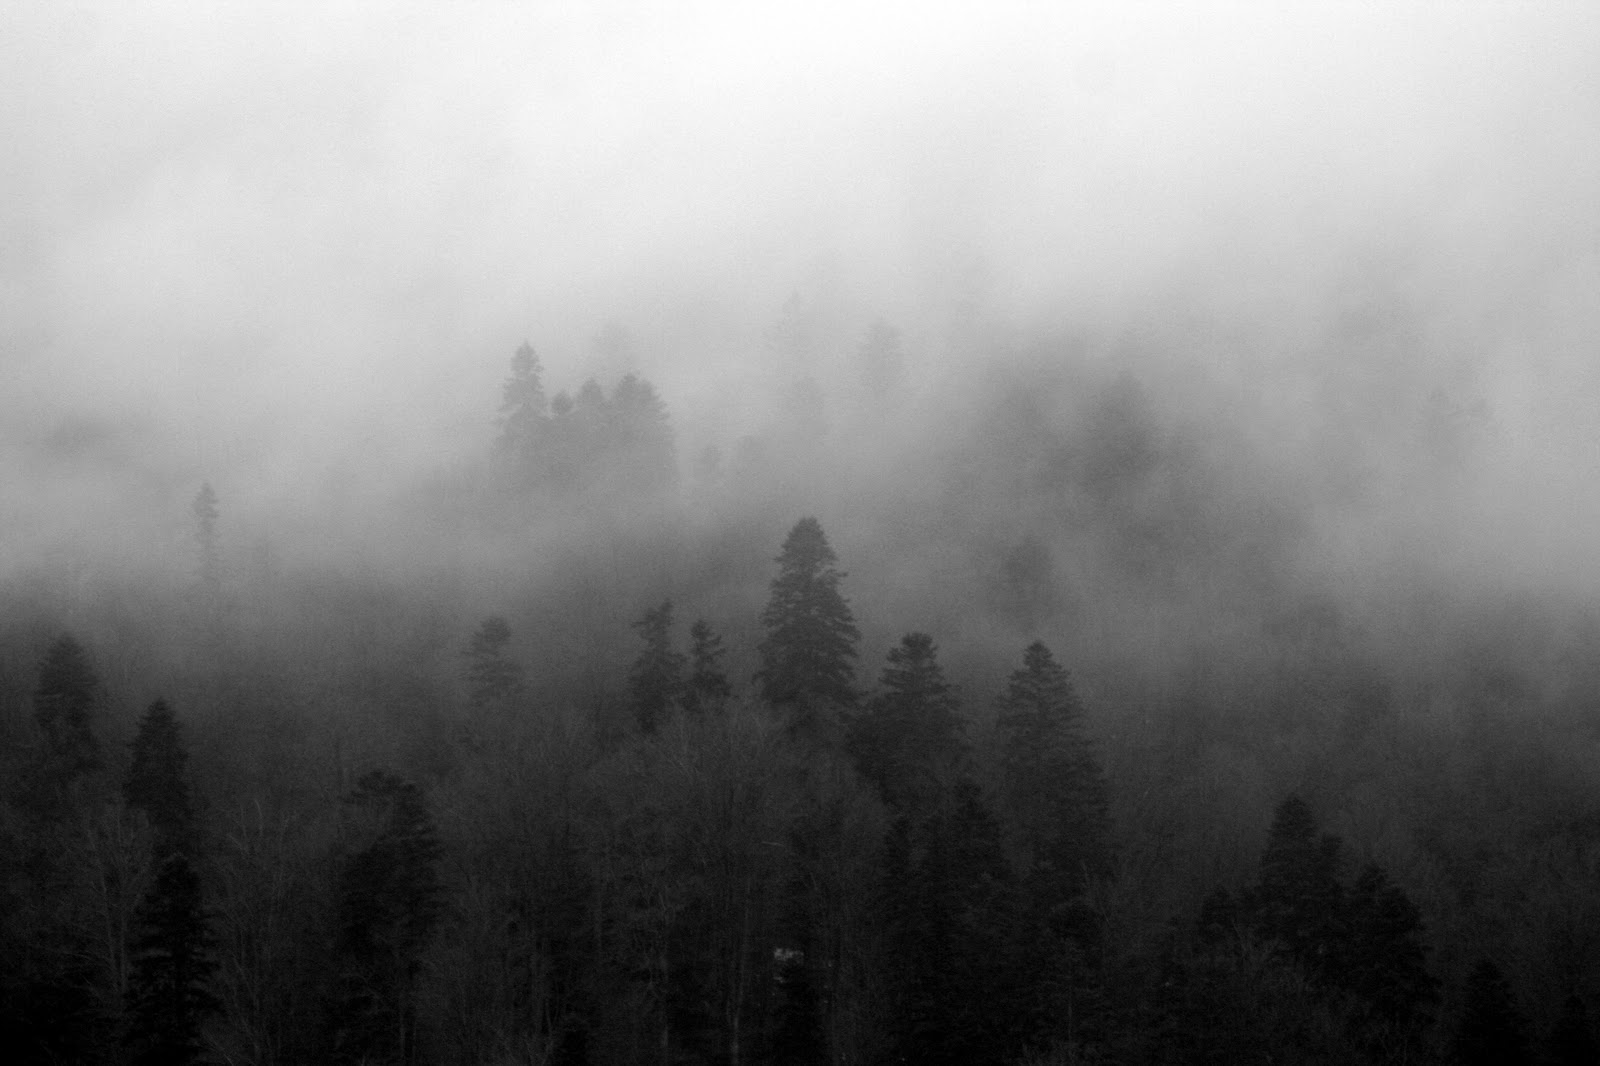 Photo by Photo: Foggy forest